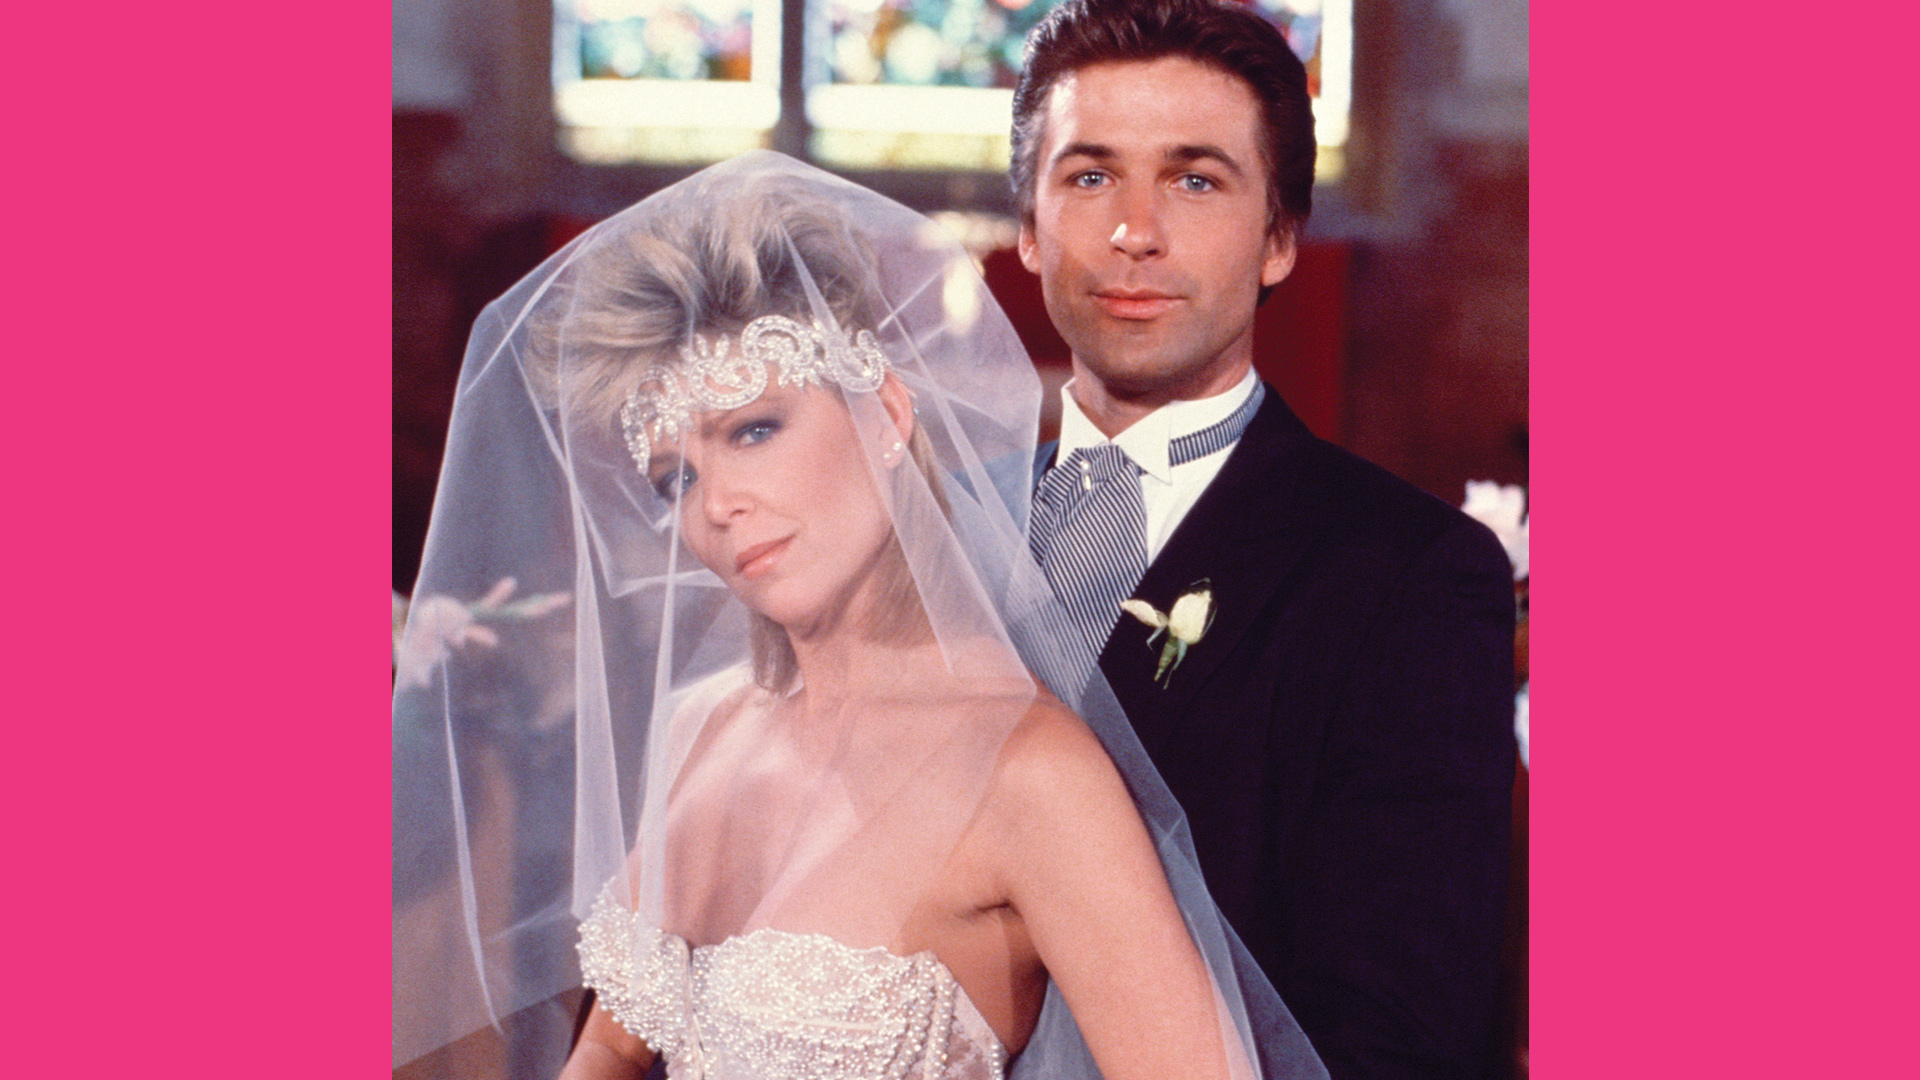 Lisa Hartman as Cathy Geary and Alec Baldwin as Joshua Rush